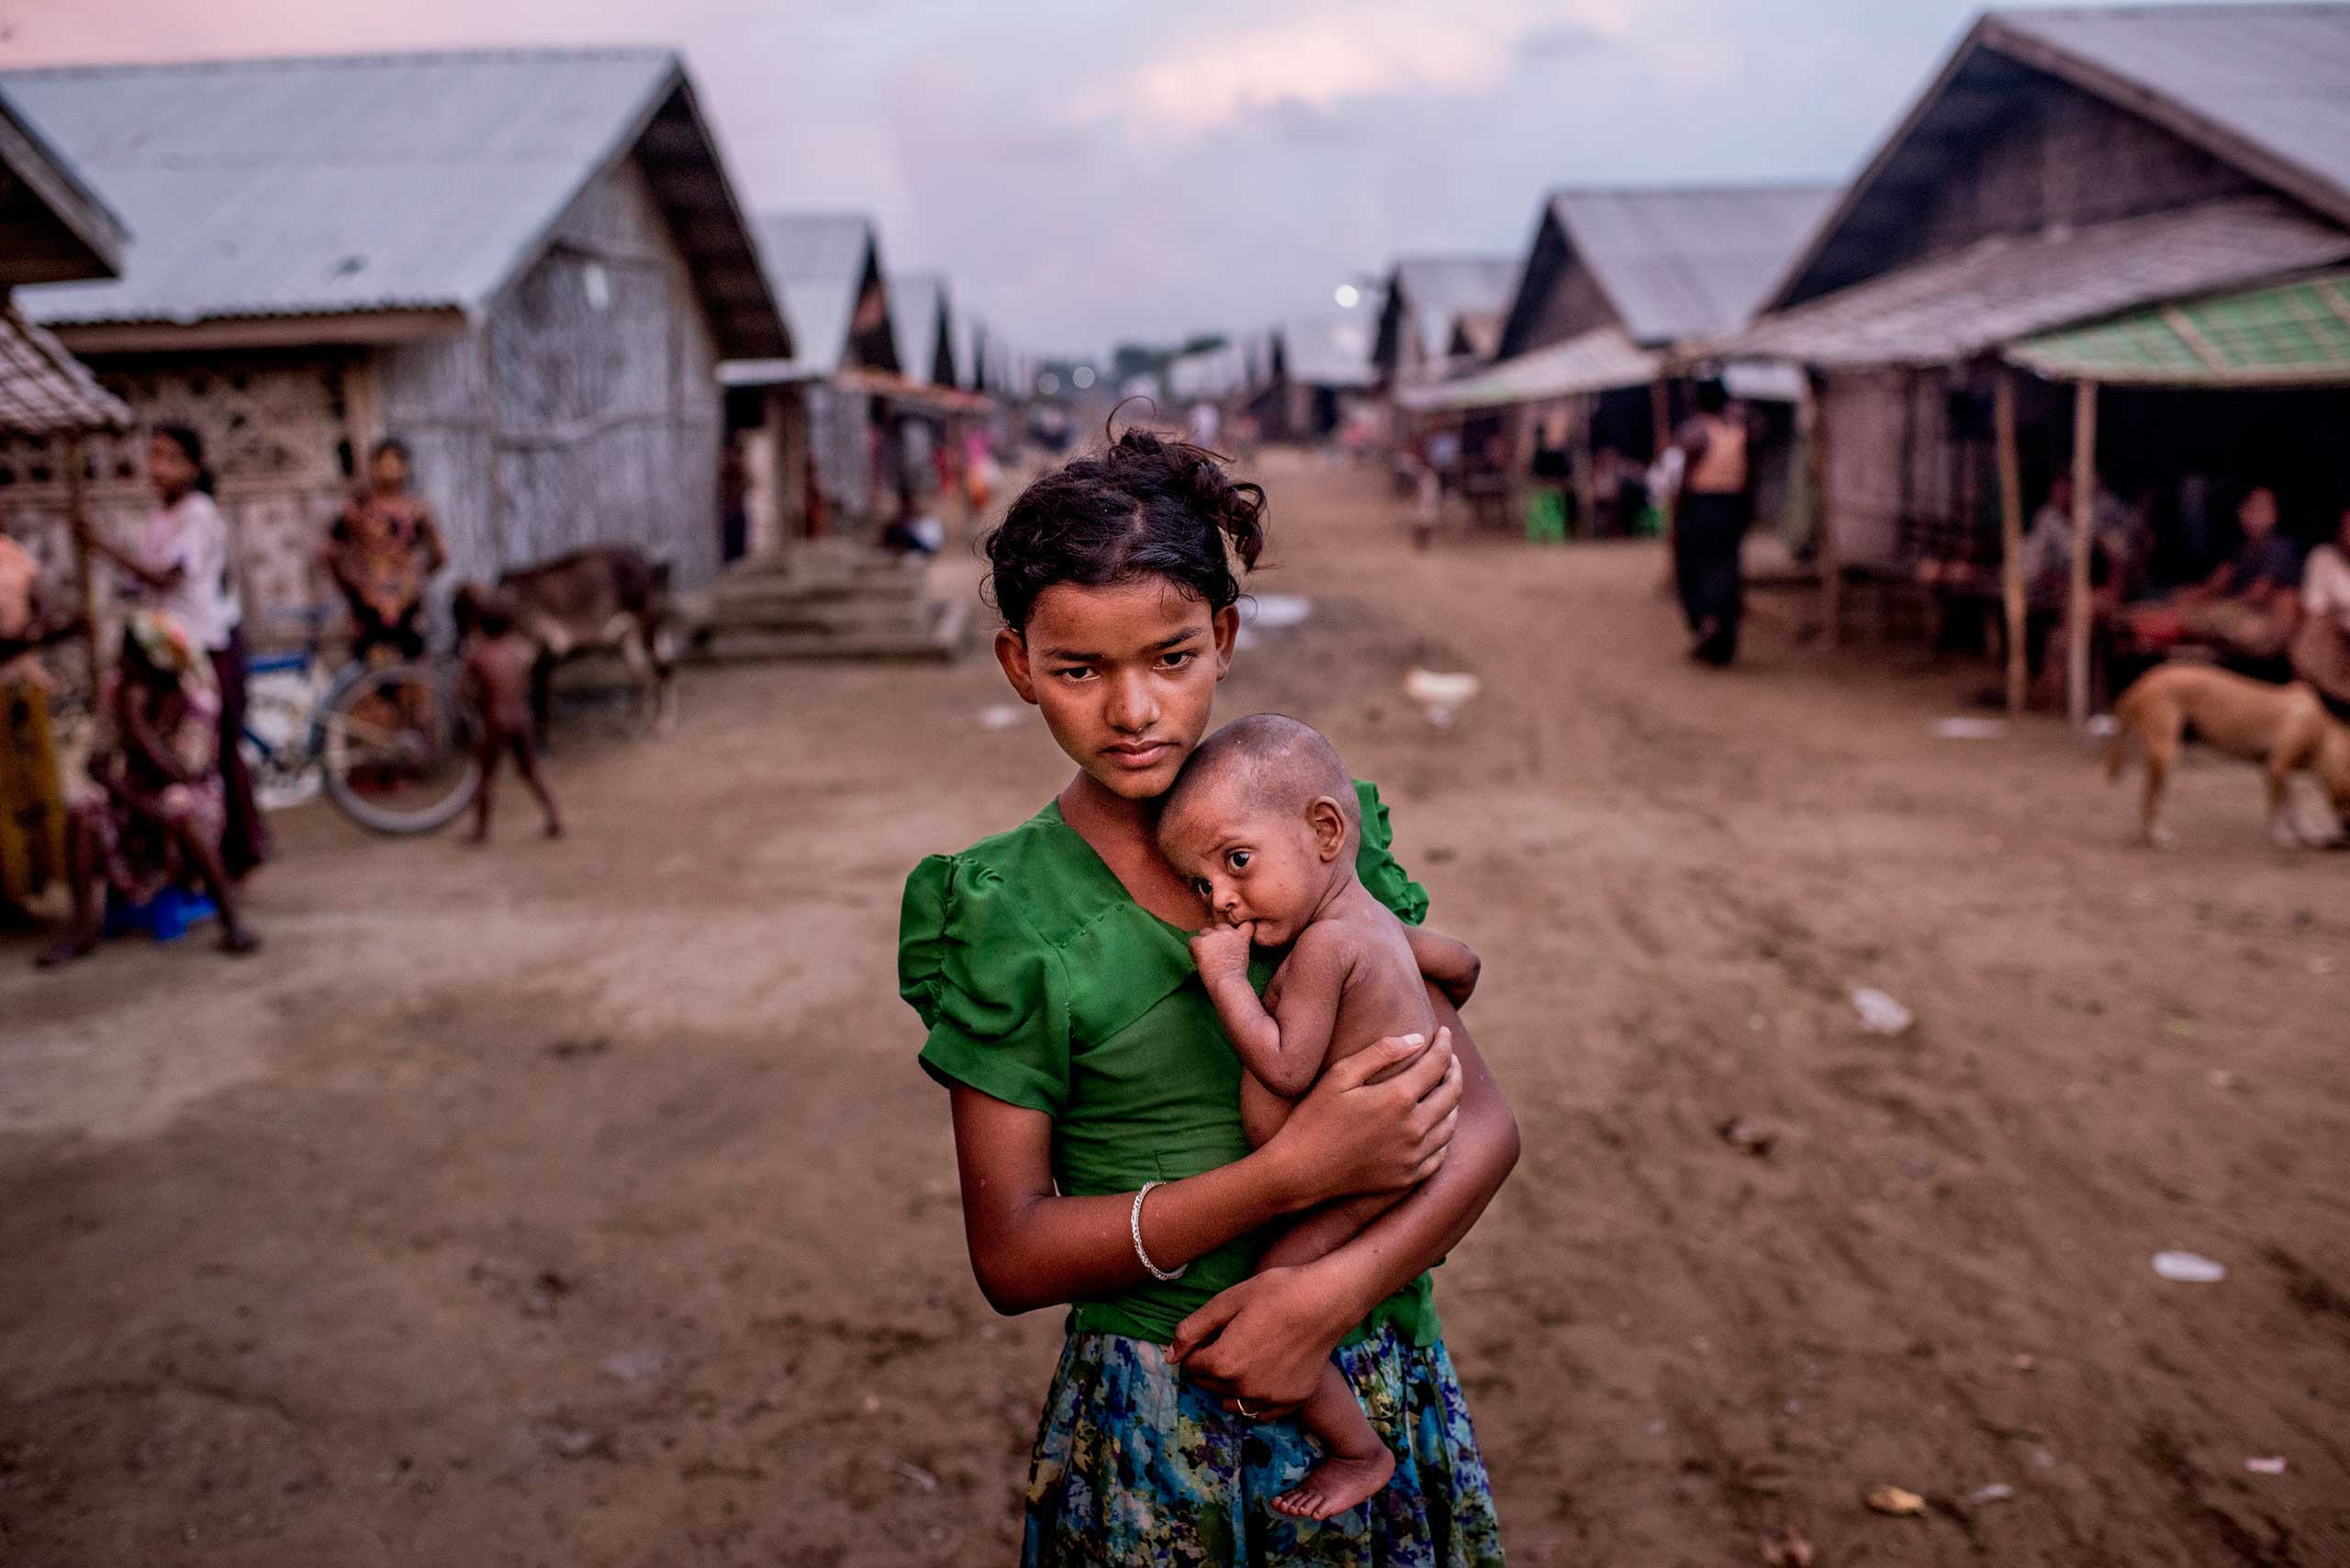 Oma Salema, 12, holds her undernourished brother Ayub Khan, 1, at a camp for Rohingya in Sittwe, Myanmar. The government of Myanmar says it is determined to stop the departures of migrants fleeing religious persecution in places like Sittwe, but it will not budge in its refusal to address the conditions driving the exodus across the sea. June 5, 2015.